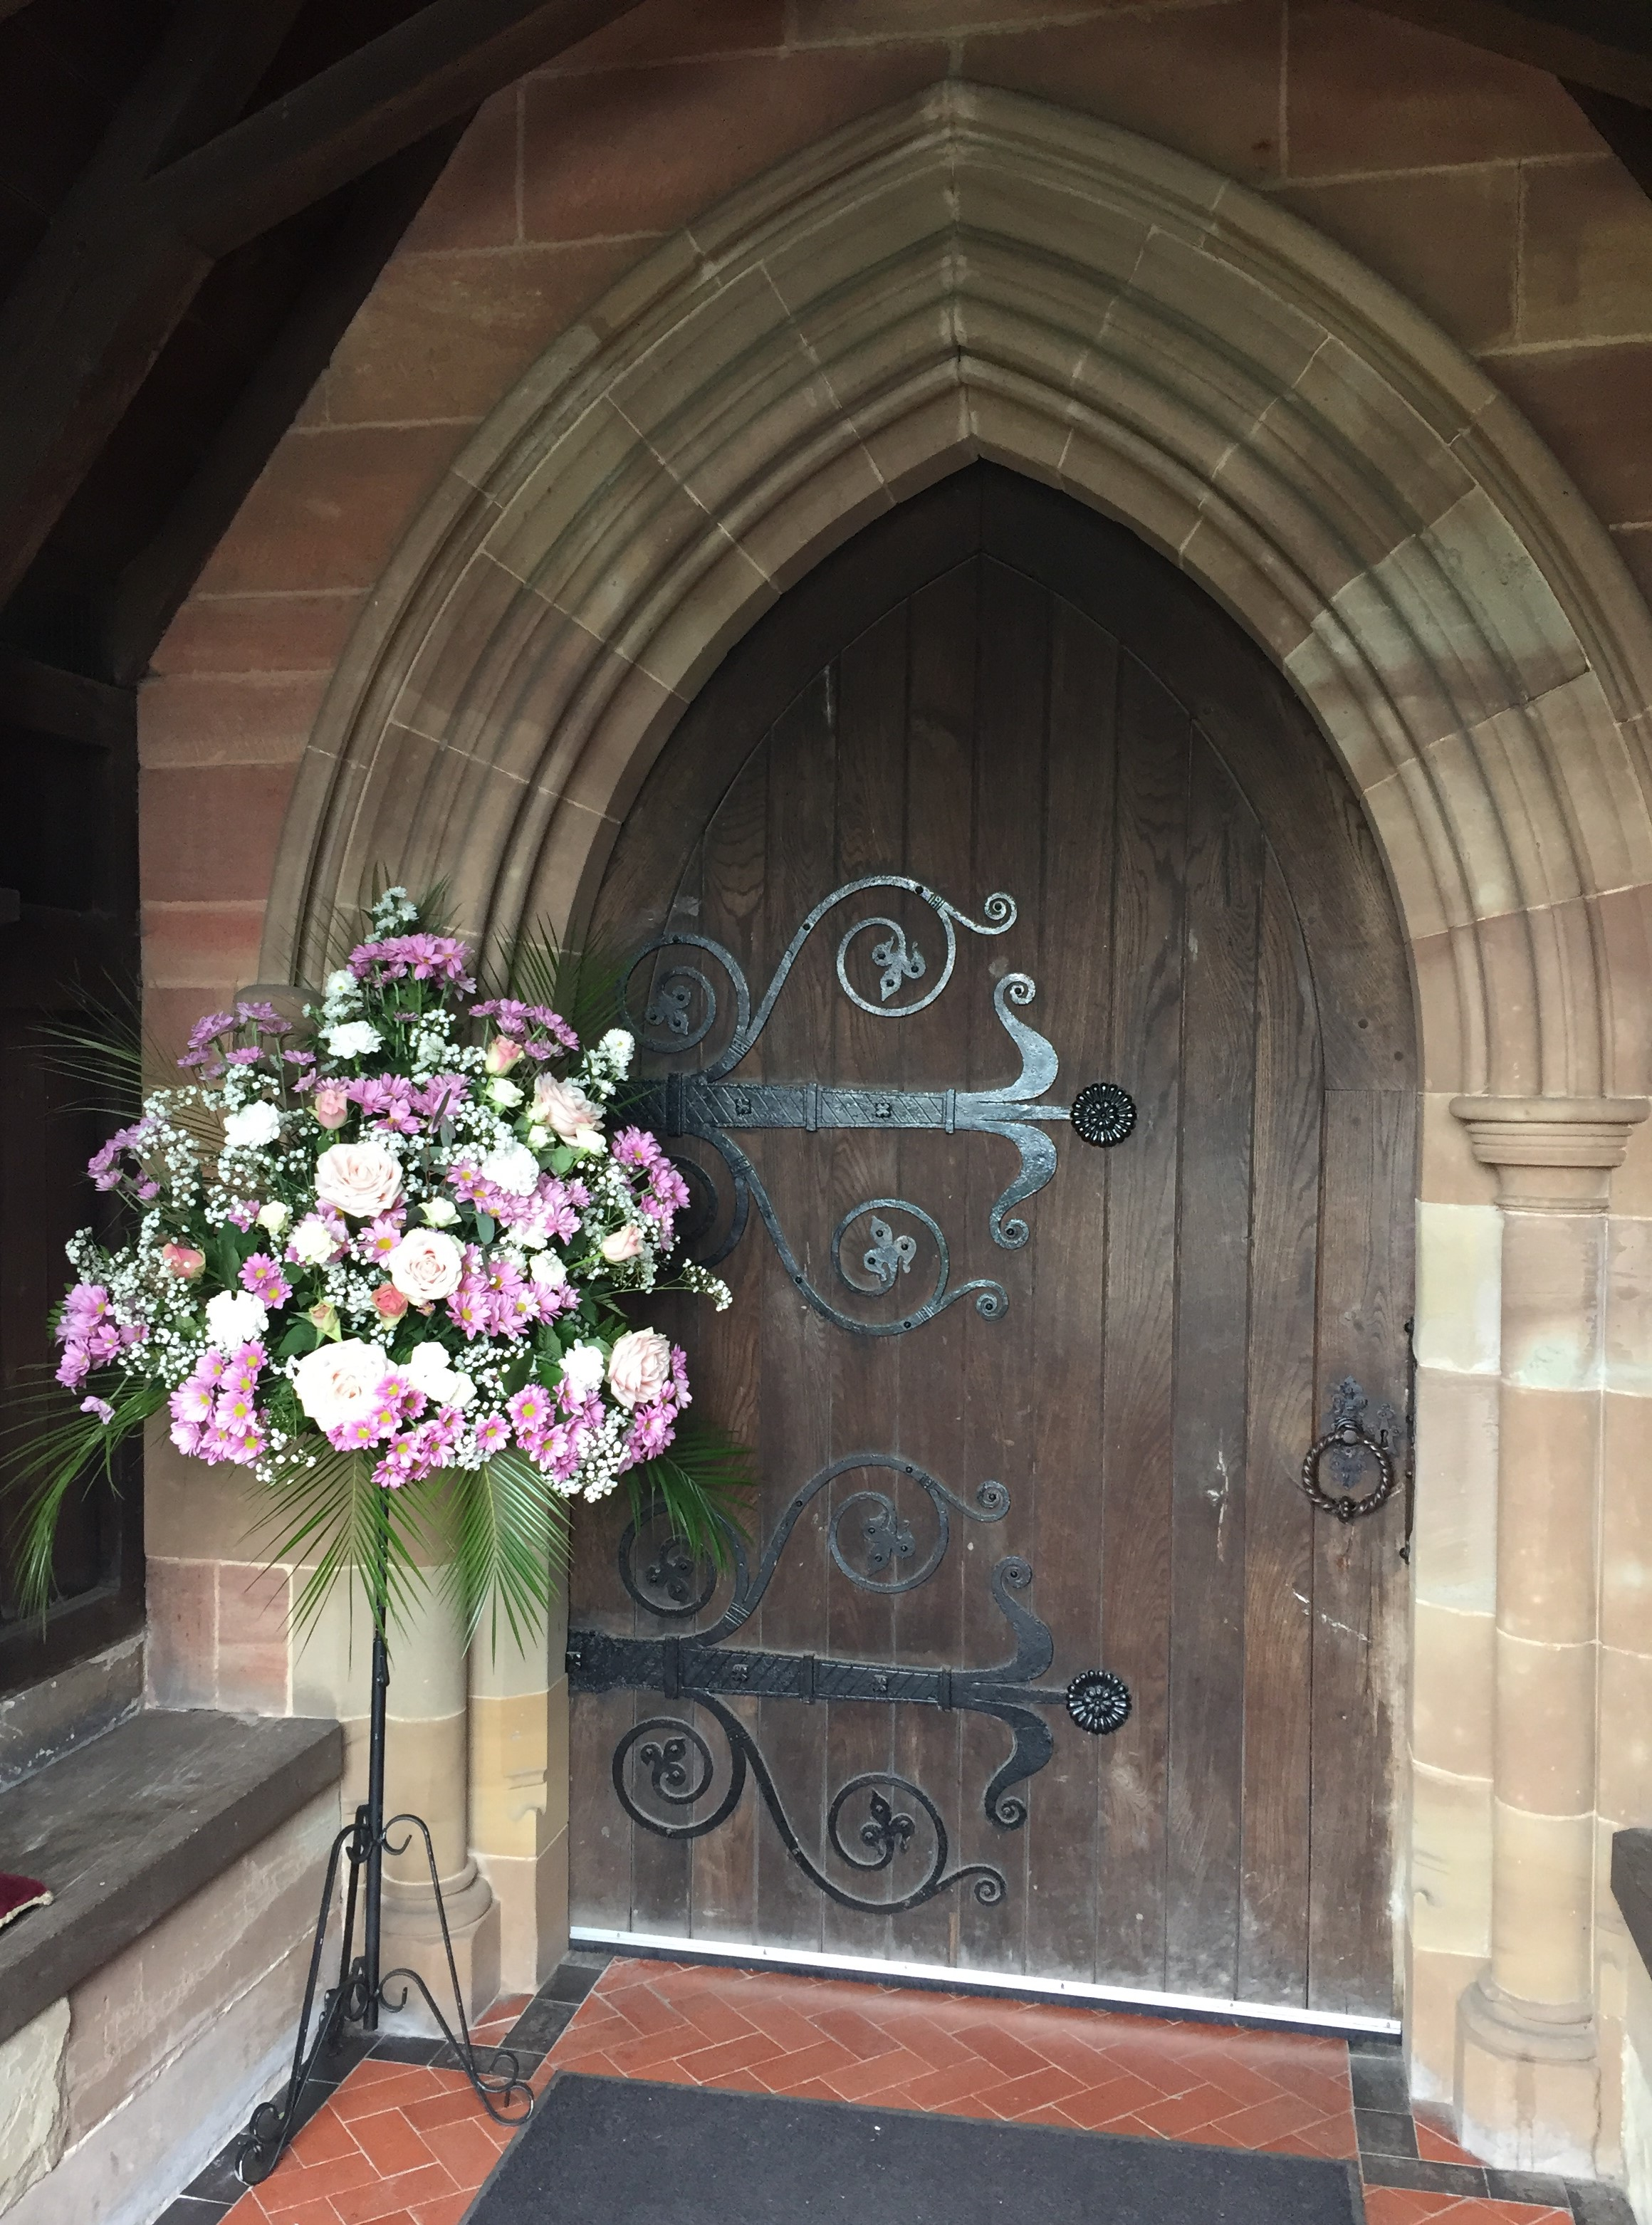 Pink & white pedestal arrangement church doorway